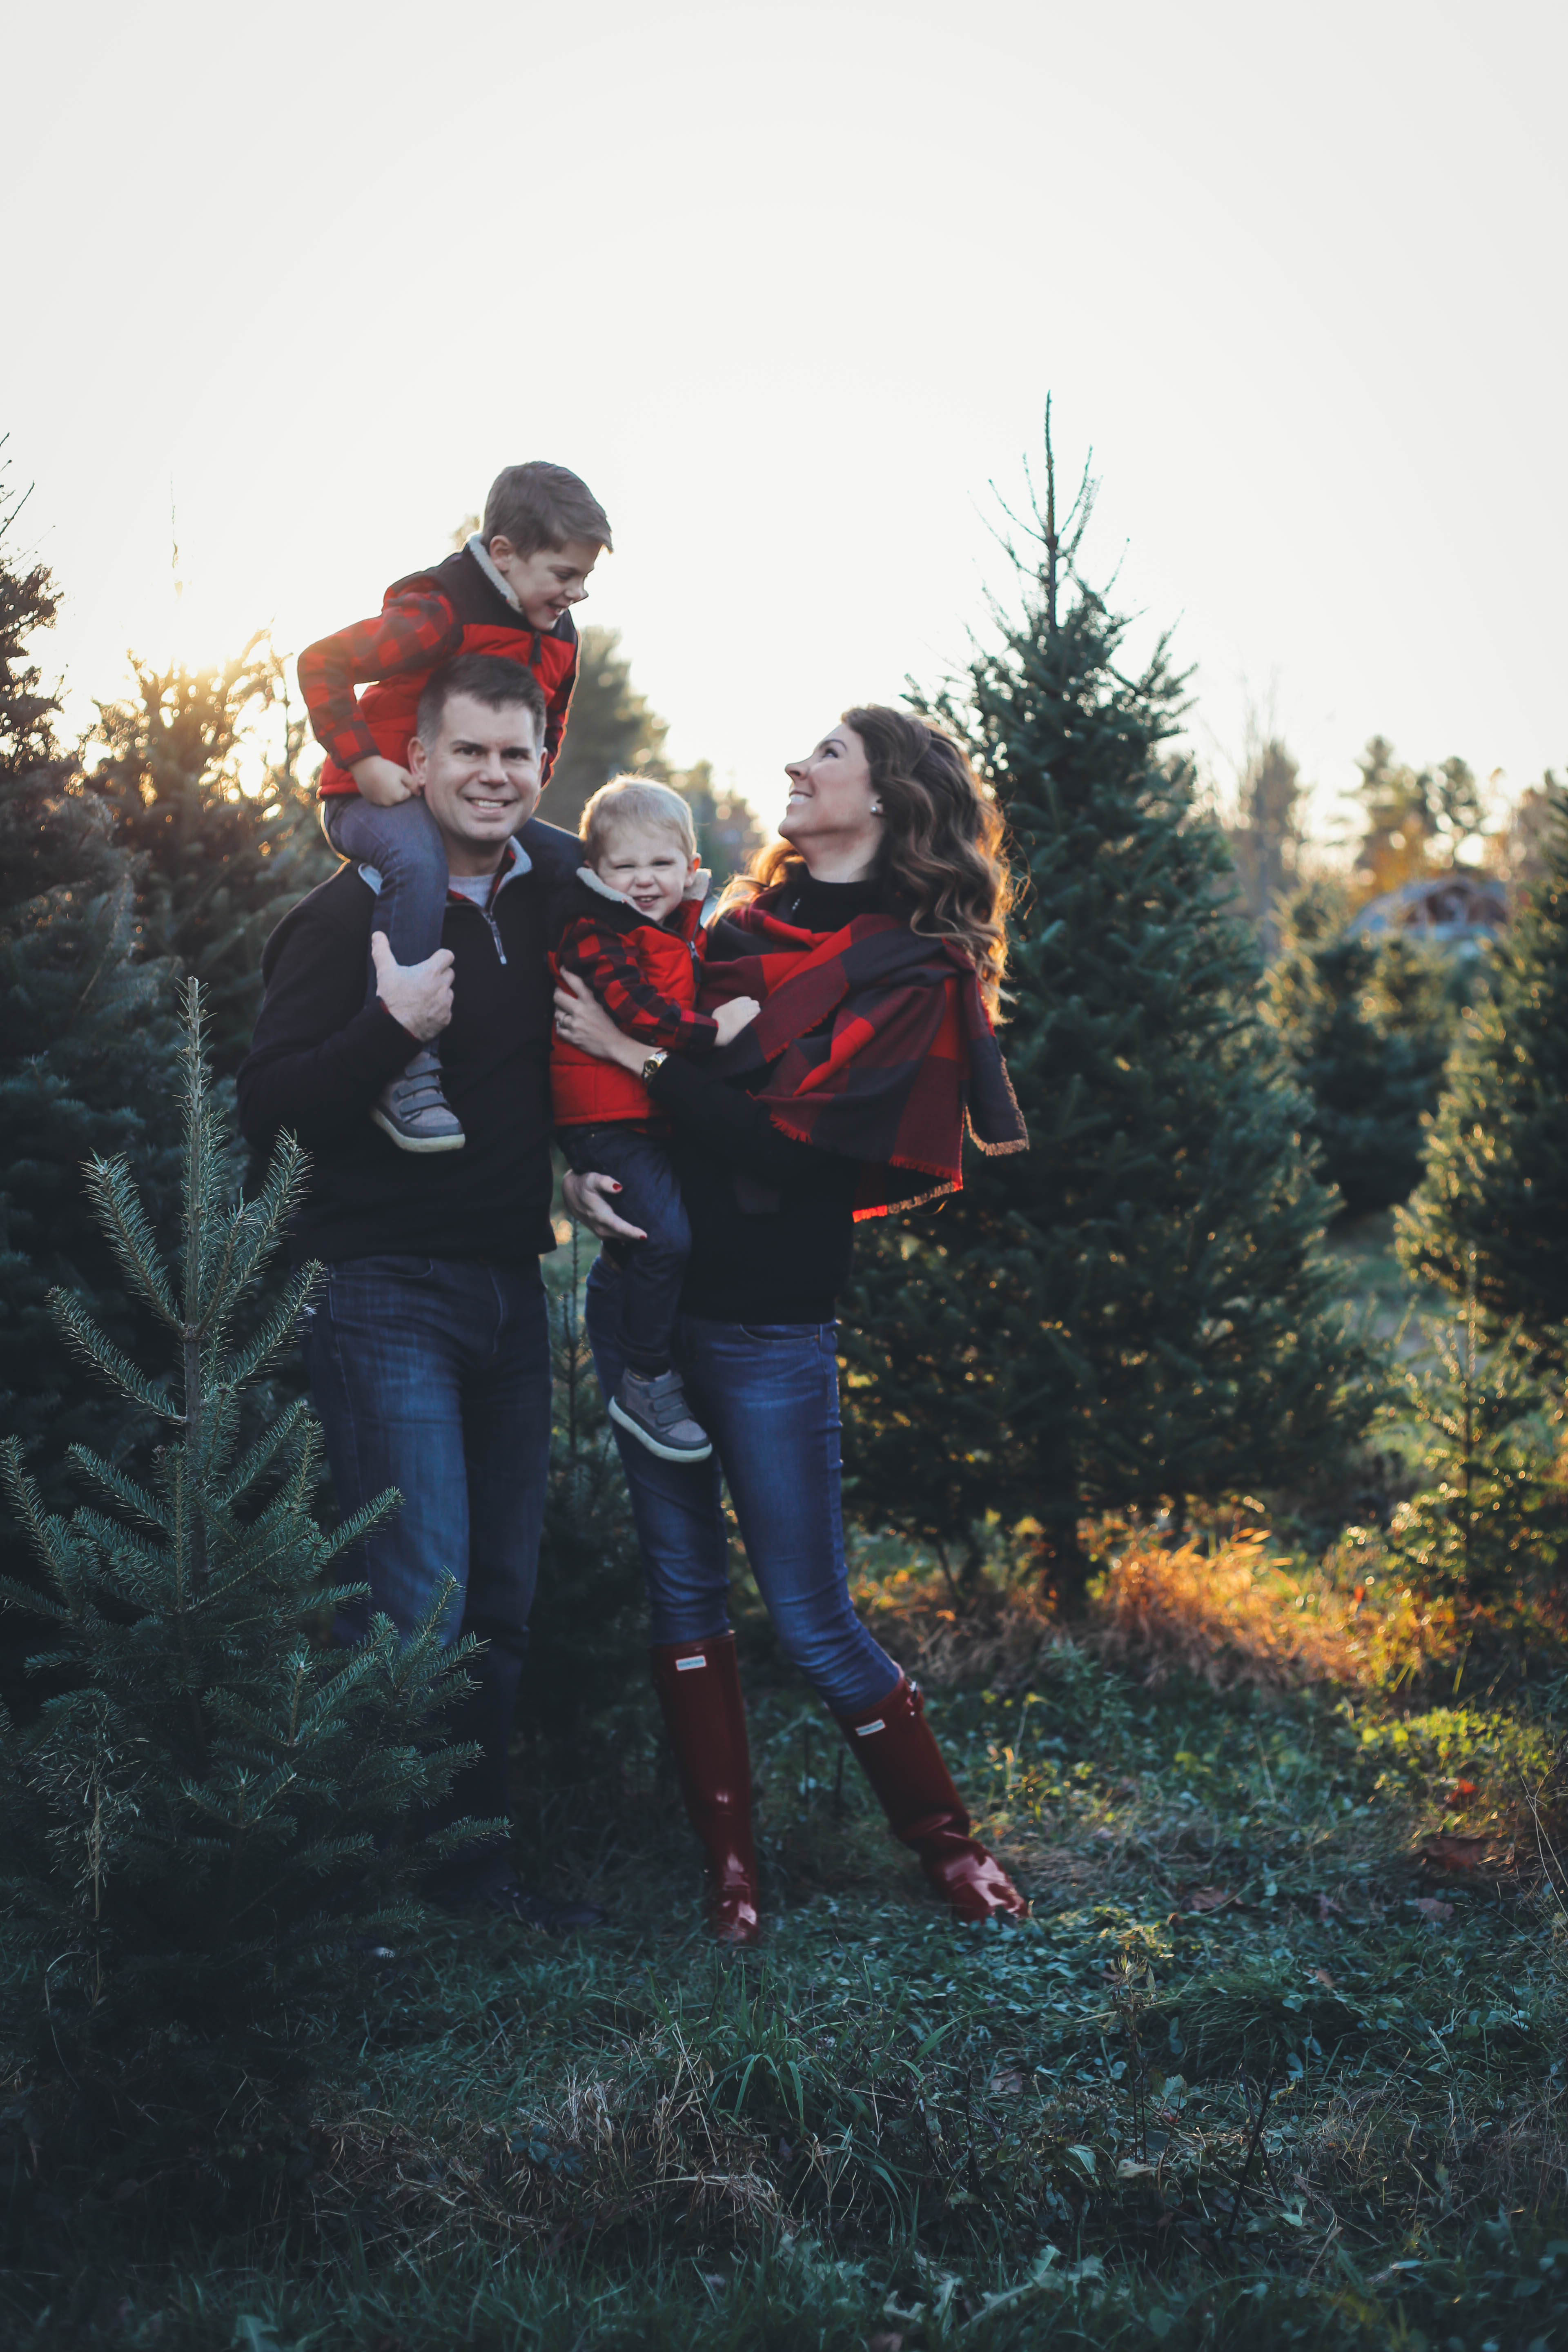 Merry Christmas Tree Farm Family Pictures From The